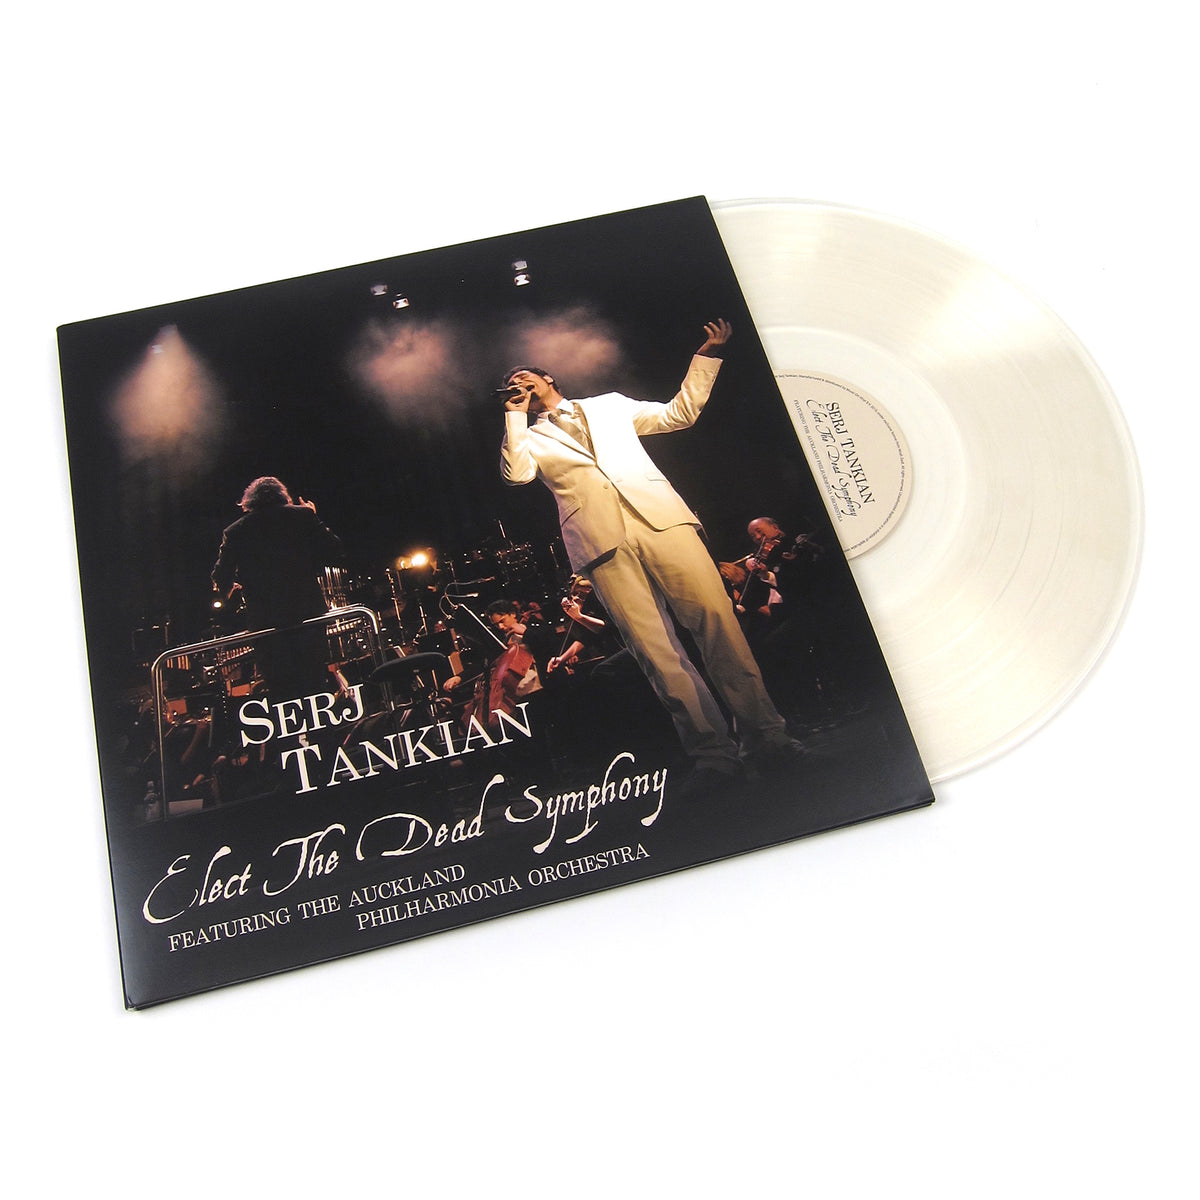 Serj Tankian: Elect The Dead Symphony (Music On Vinyl Colored Vinyl) Vinyl 2LP